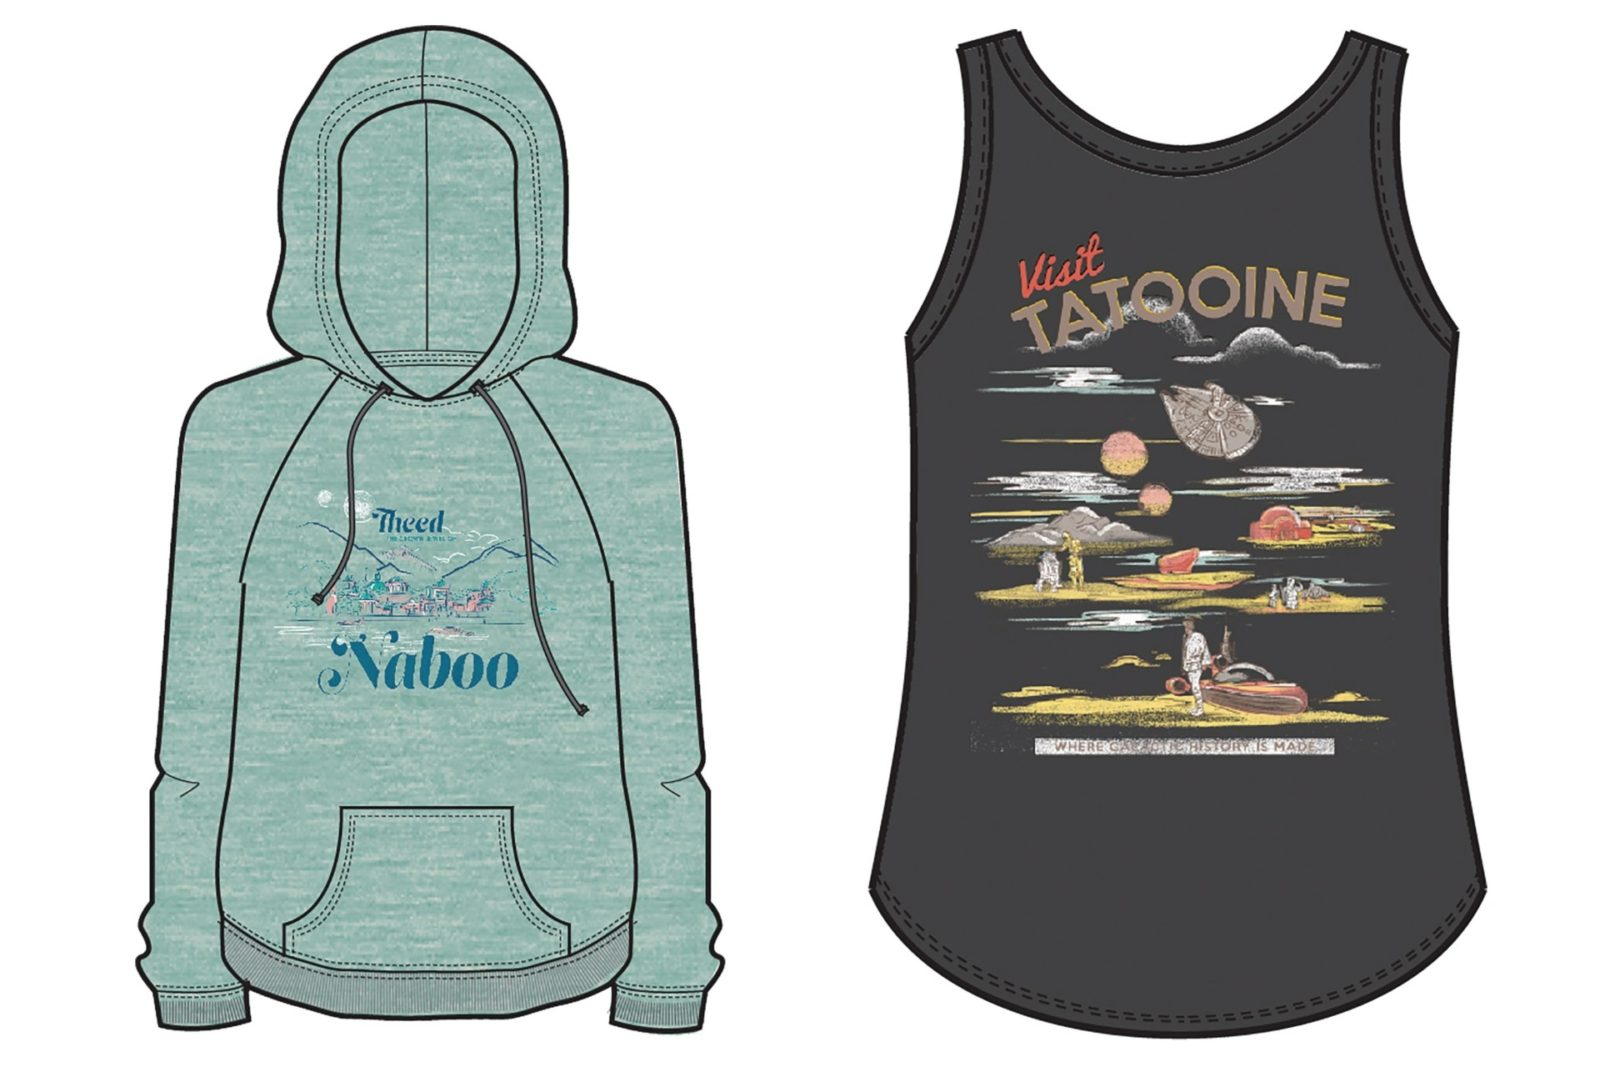 Upcoming Her Universe designs at Previews World